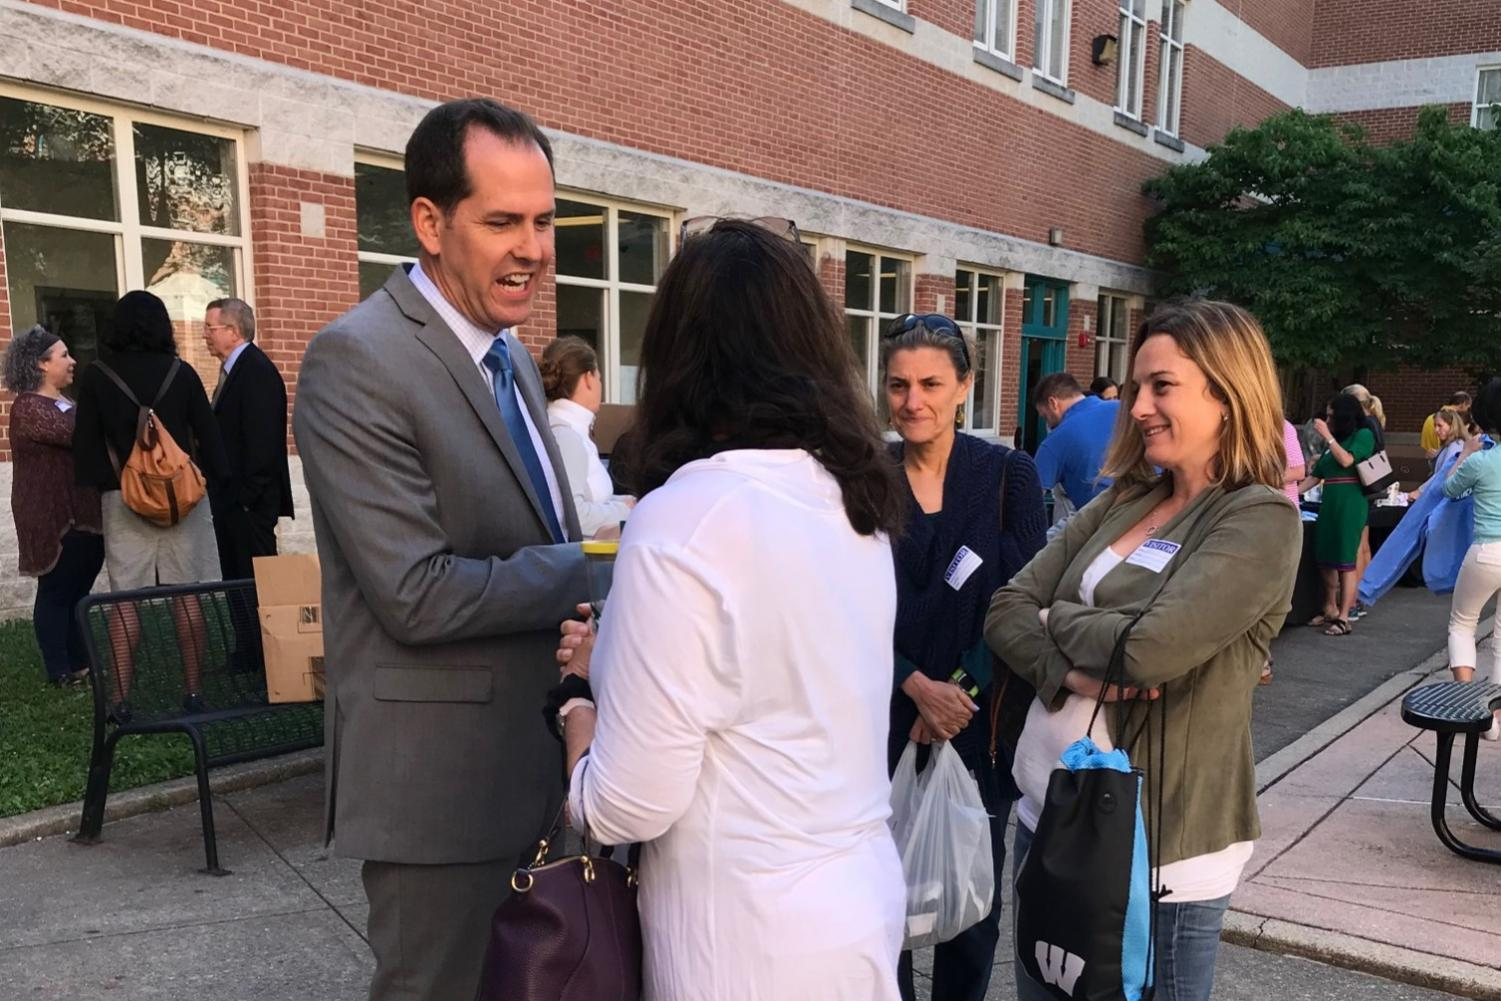 Incoming principal Robert Dodd talks to parents at the annual principal's coffee for new parents June 12. Dodd will host three more coffees this summer open to all parents. Photo courtesy of Elizabeth Drye.